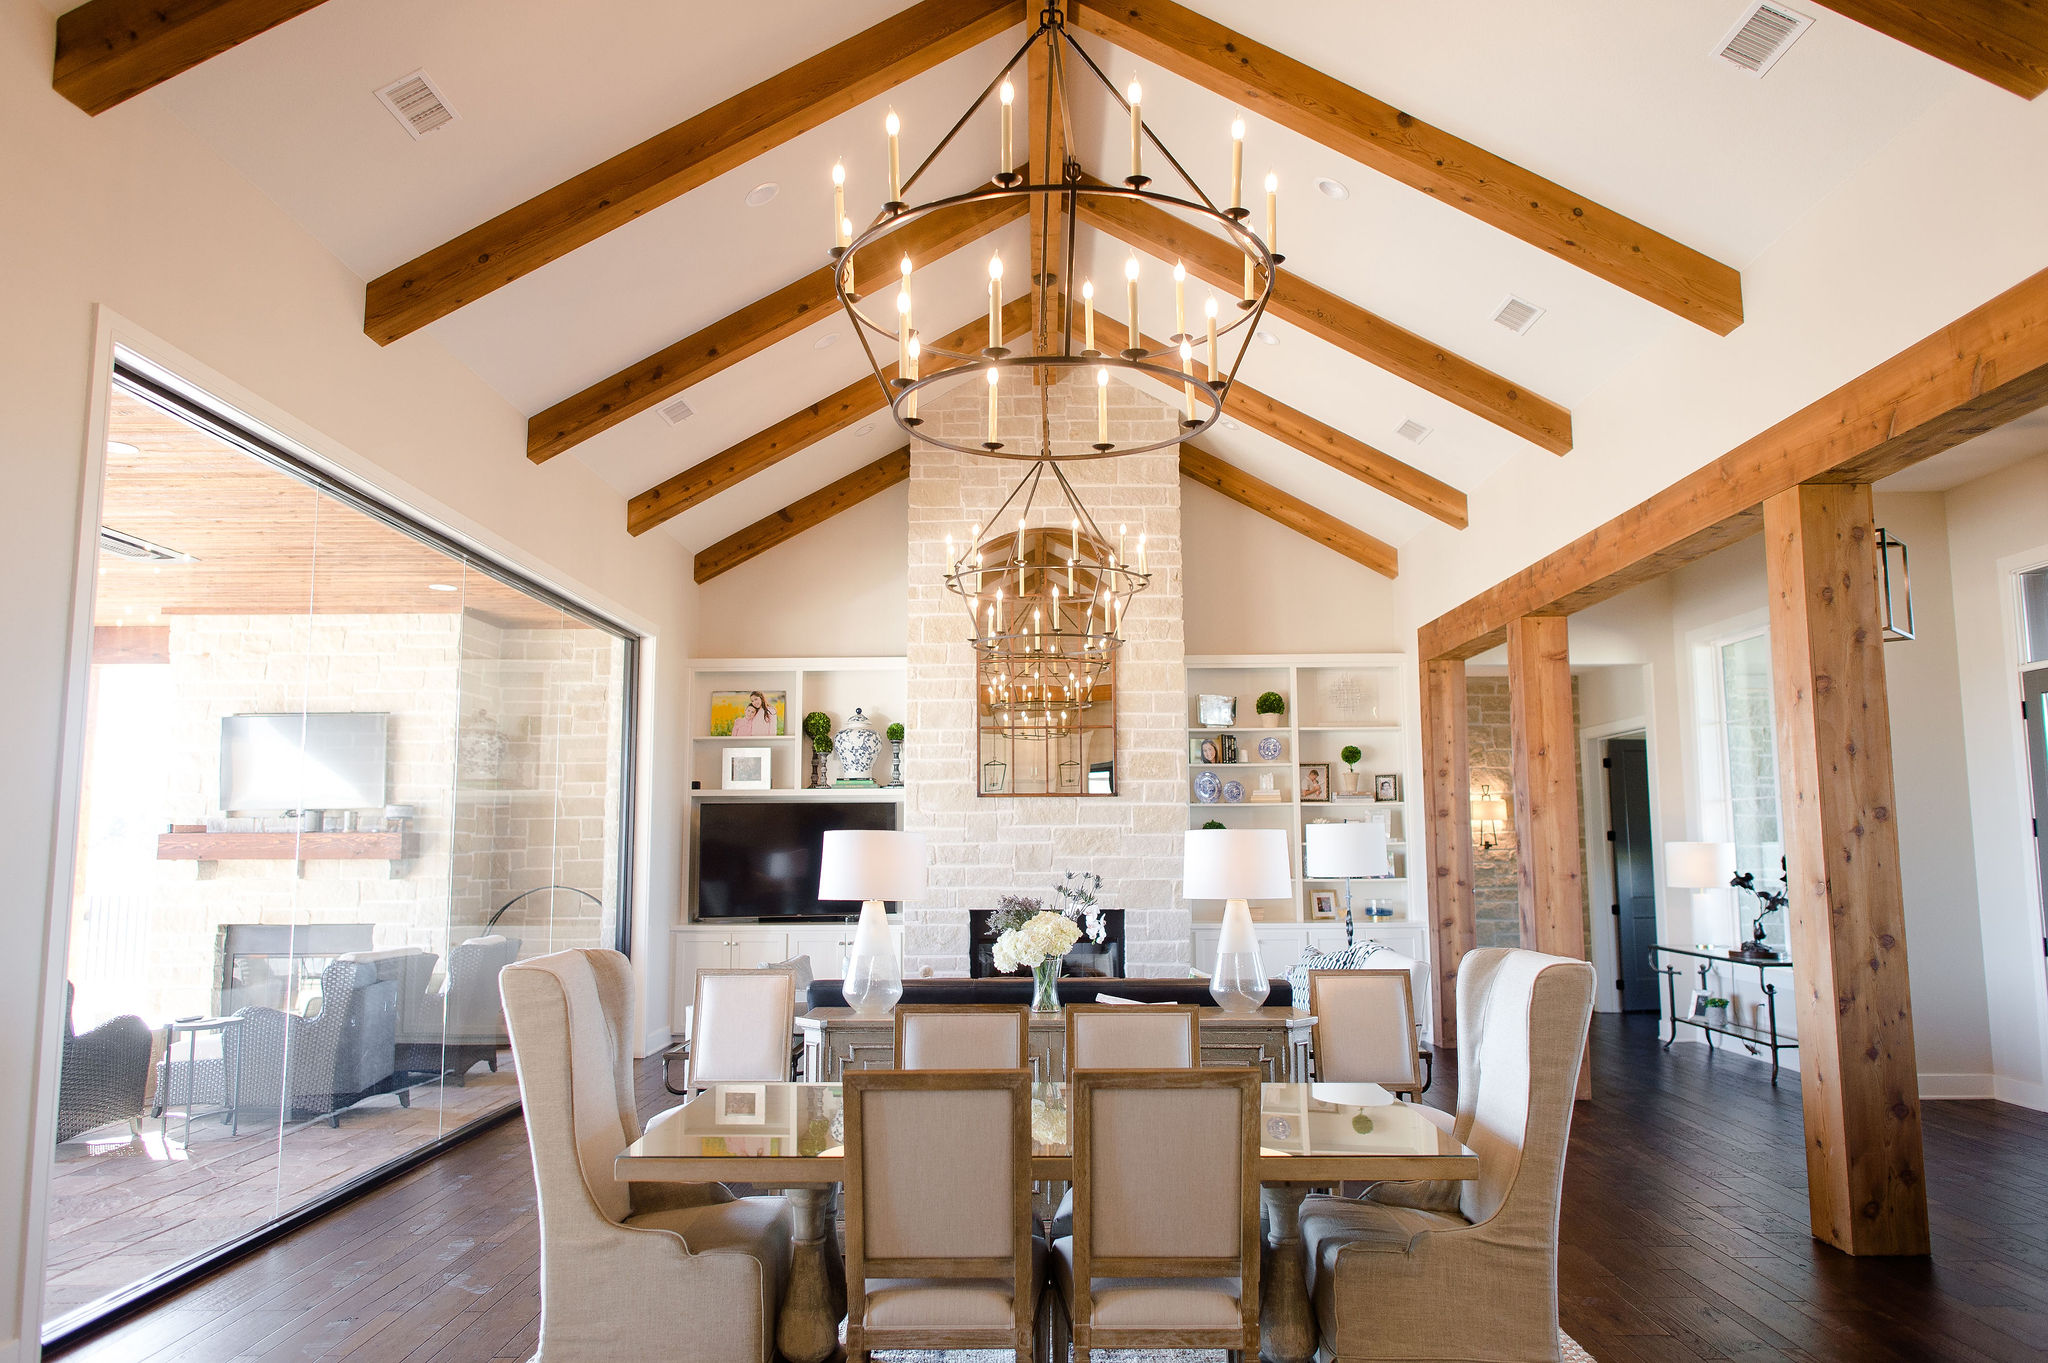 Clark-Design-Studio-Hill-Country-Transitional-exposed-beams-dark-wood-iron-light-fixtures.jpg